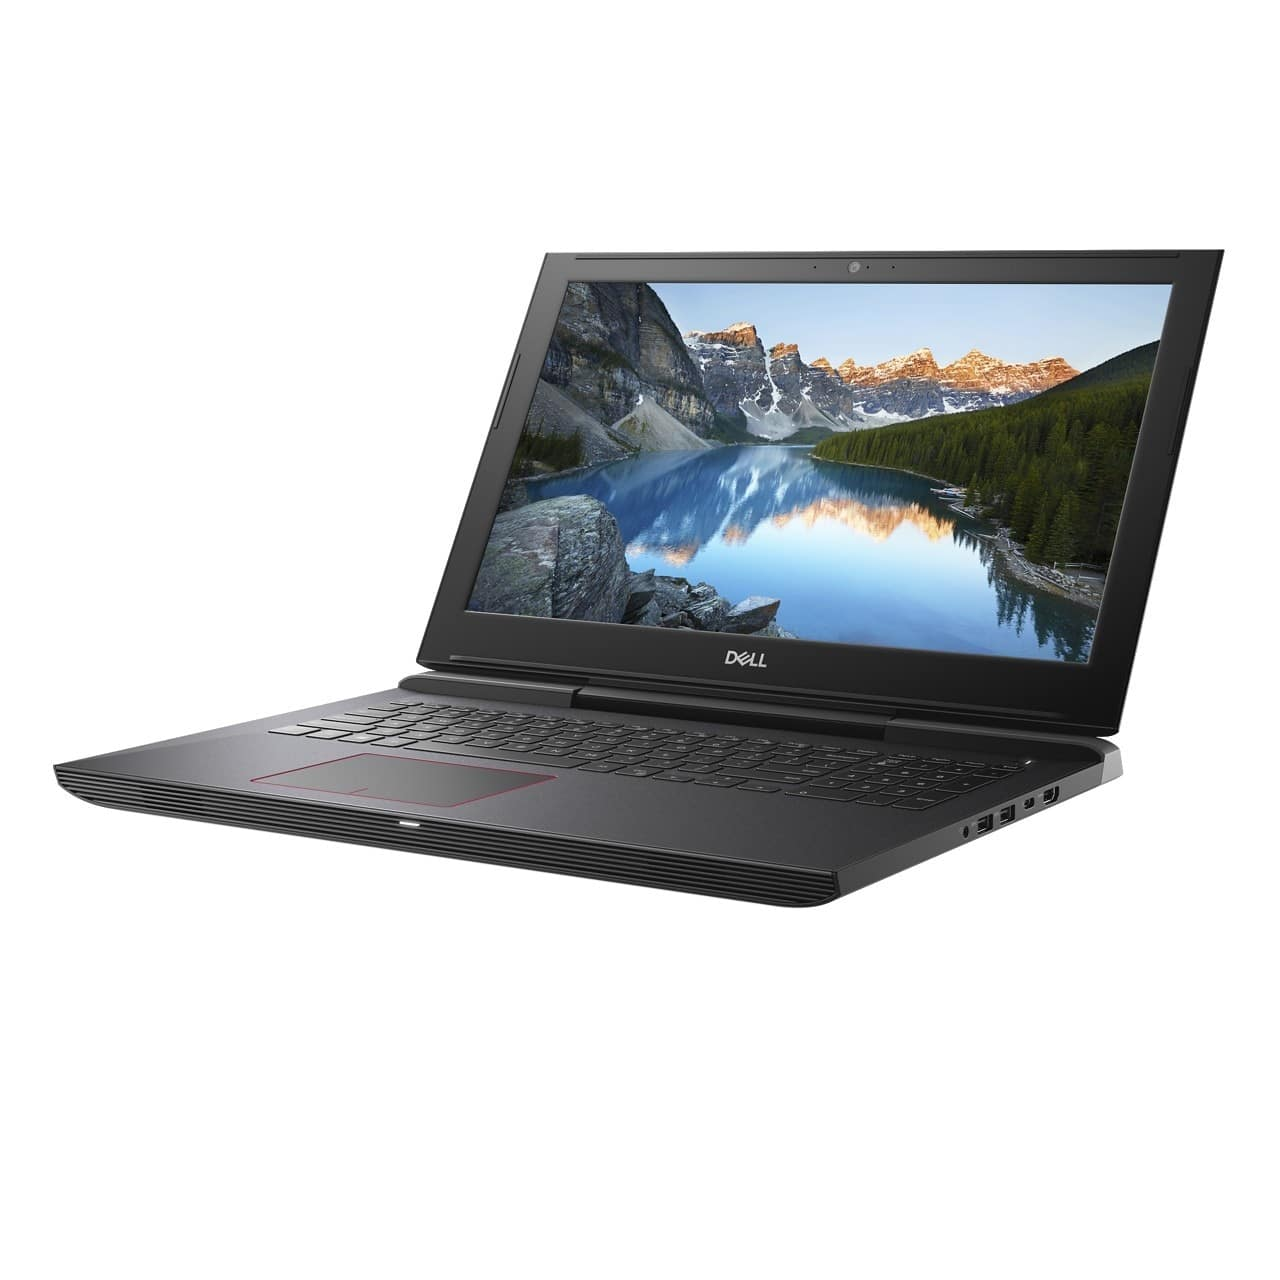 [Dell Outlet] Inspiron 7577 Gaming Laptop i5-7300HQ 8GB DDR4 GTX 1060 6GB - $670+tax